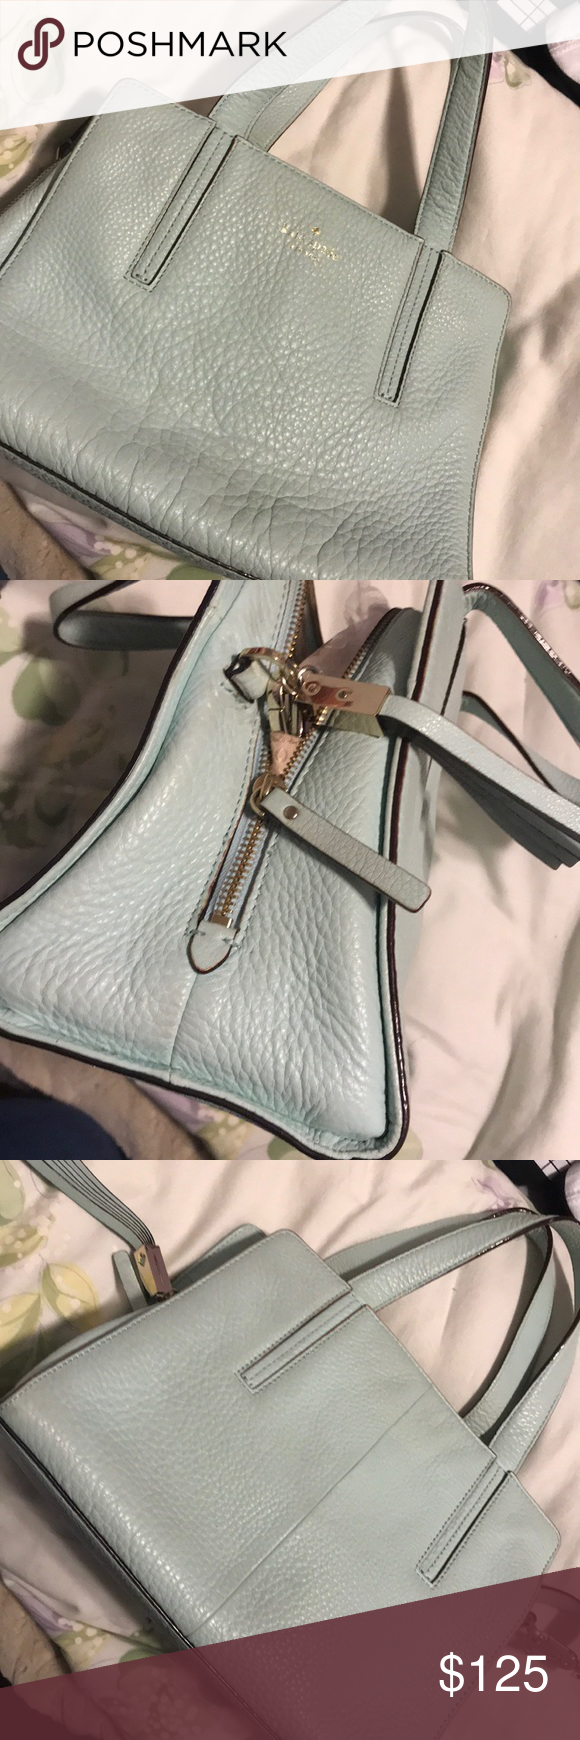 Pastel blue Kate Spade Crossbody Slightly used pastel blue Kate Spade crossbody.   Purchased for $215 after tax.  Original price: $498    Year of purchase July 4th of 2015 kate spade Bags Crossbody Bags